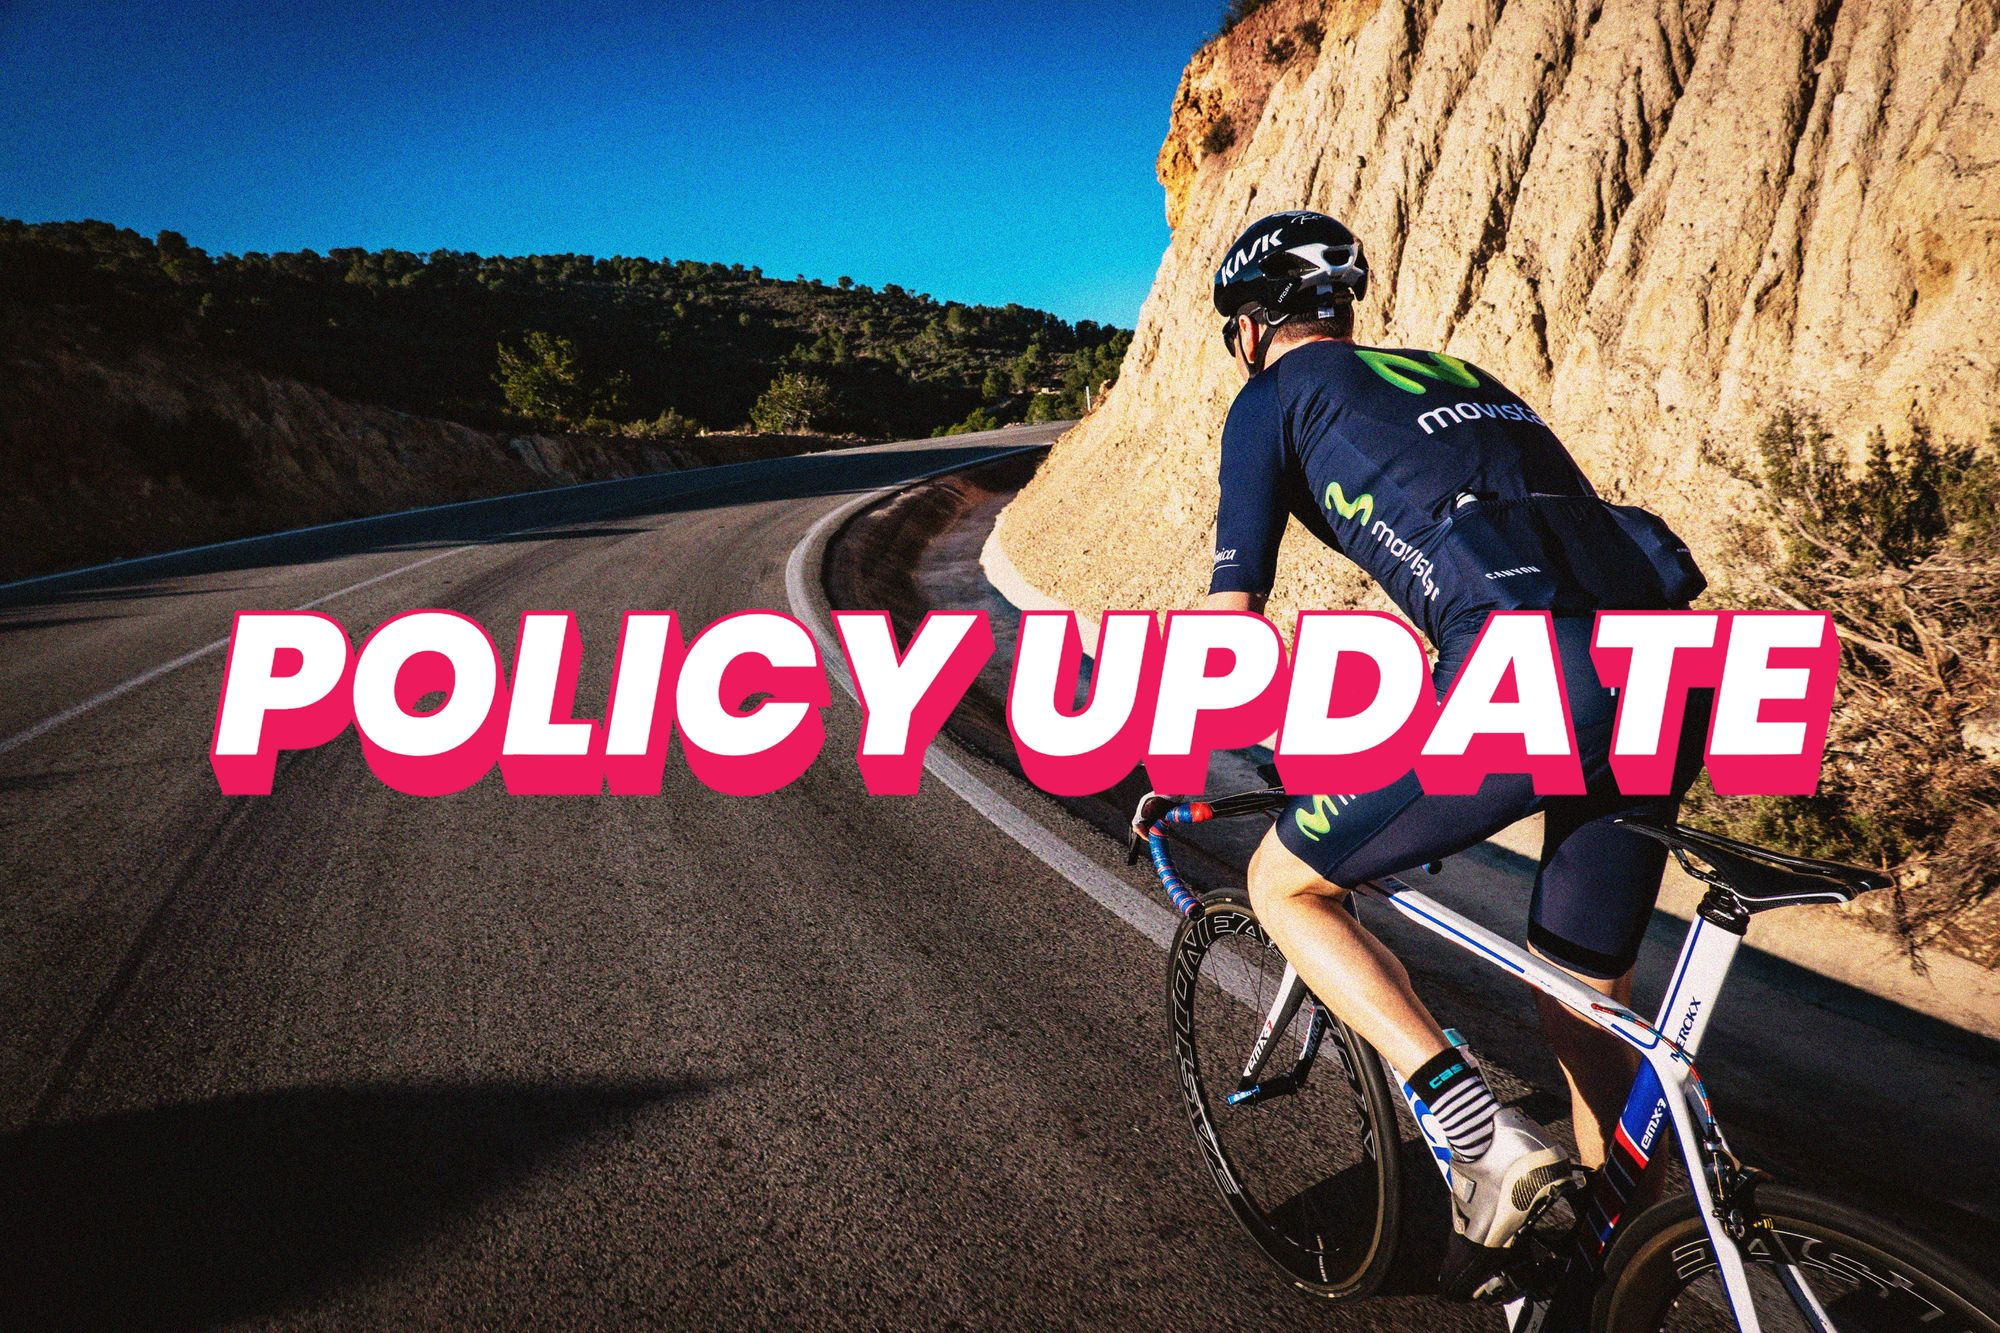 Your bicycle cover get's an update - Five new policy features you should read today